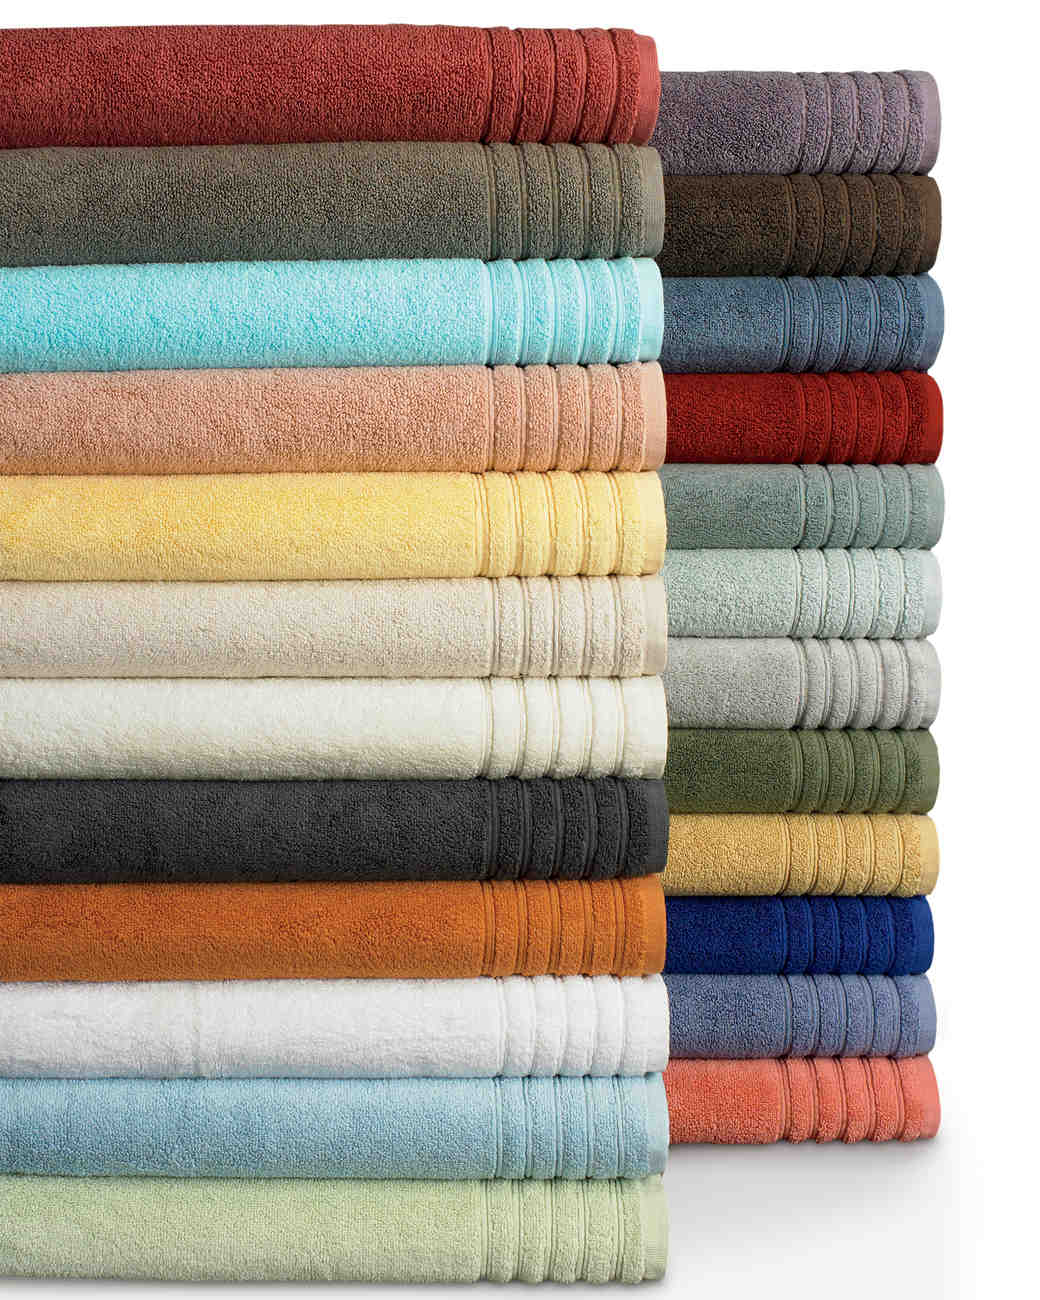 macys-registry-3-hotel-collection-microcotton-towels-0115.jpg